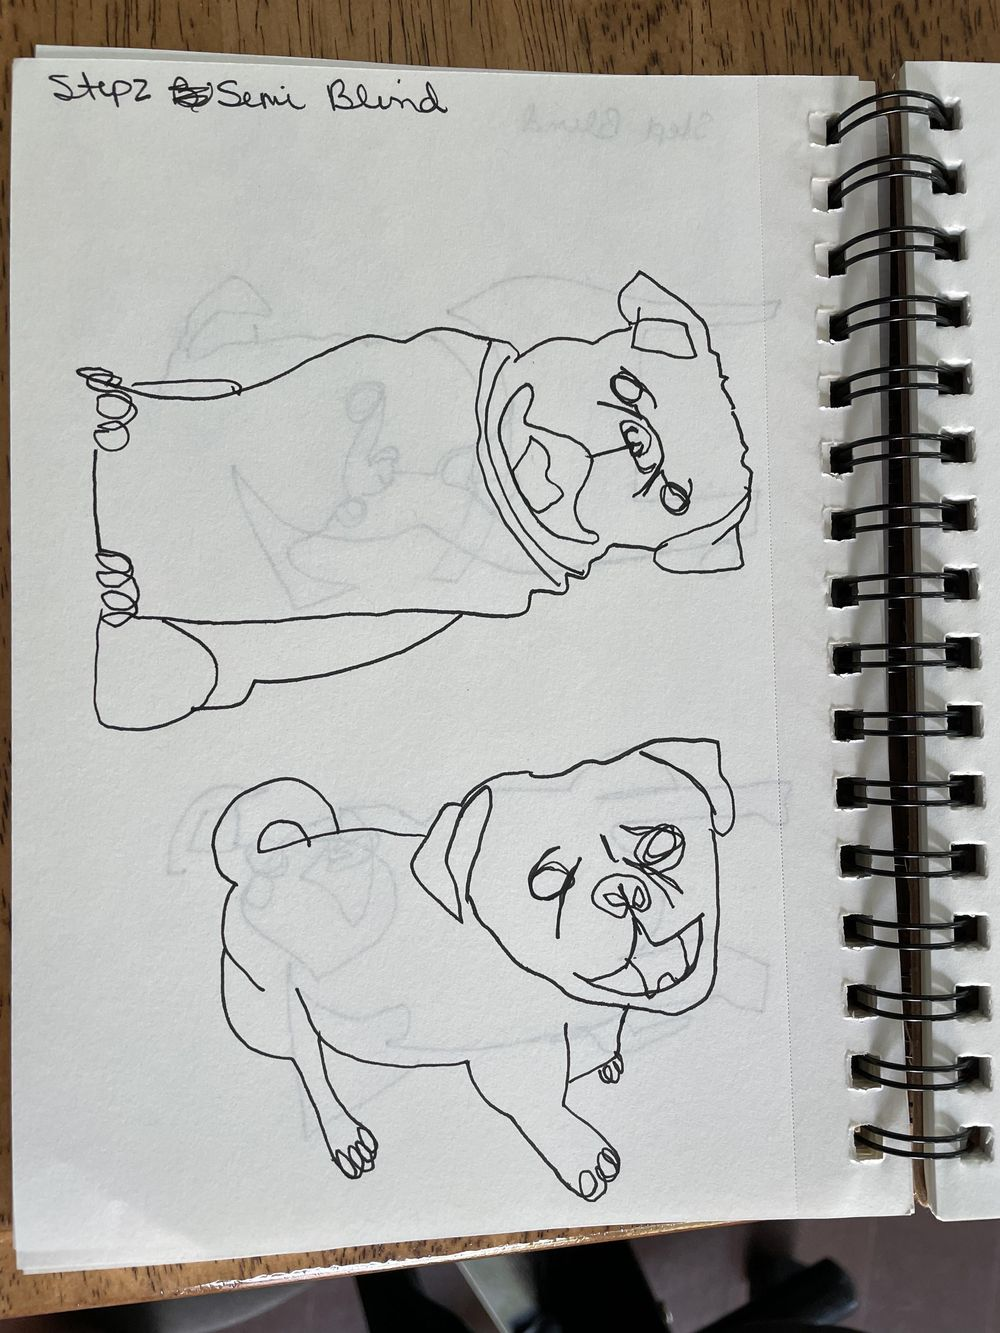 Line drawing practice - image 17 - student project